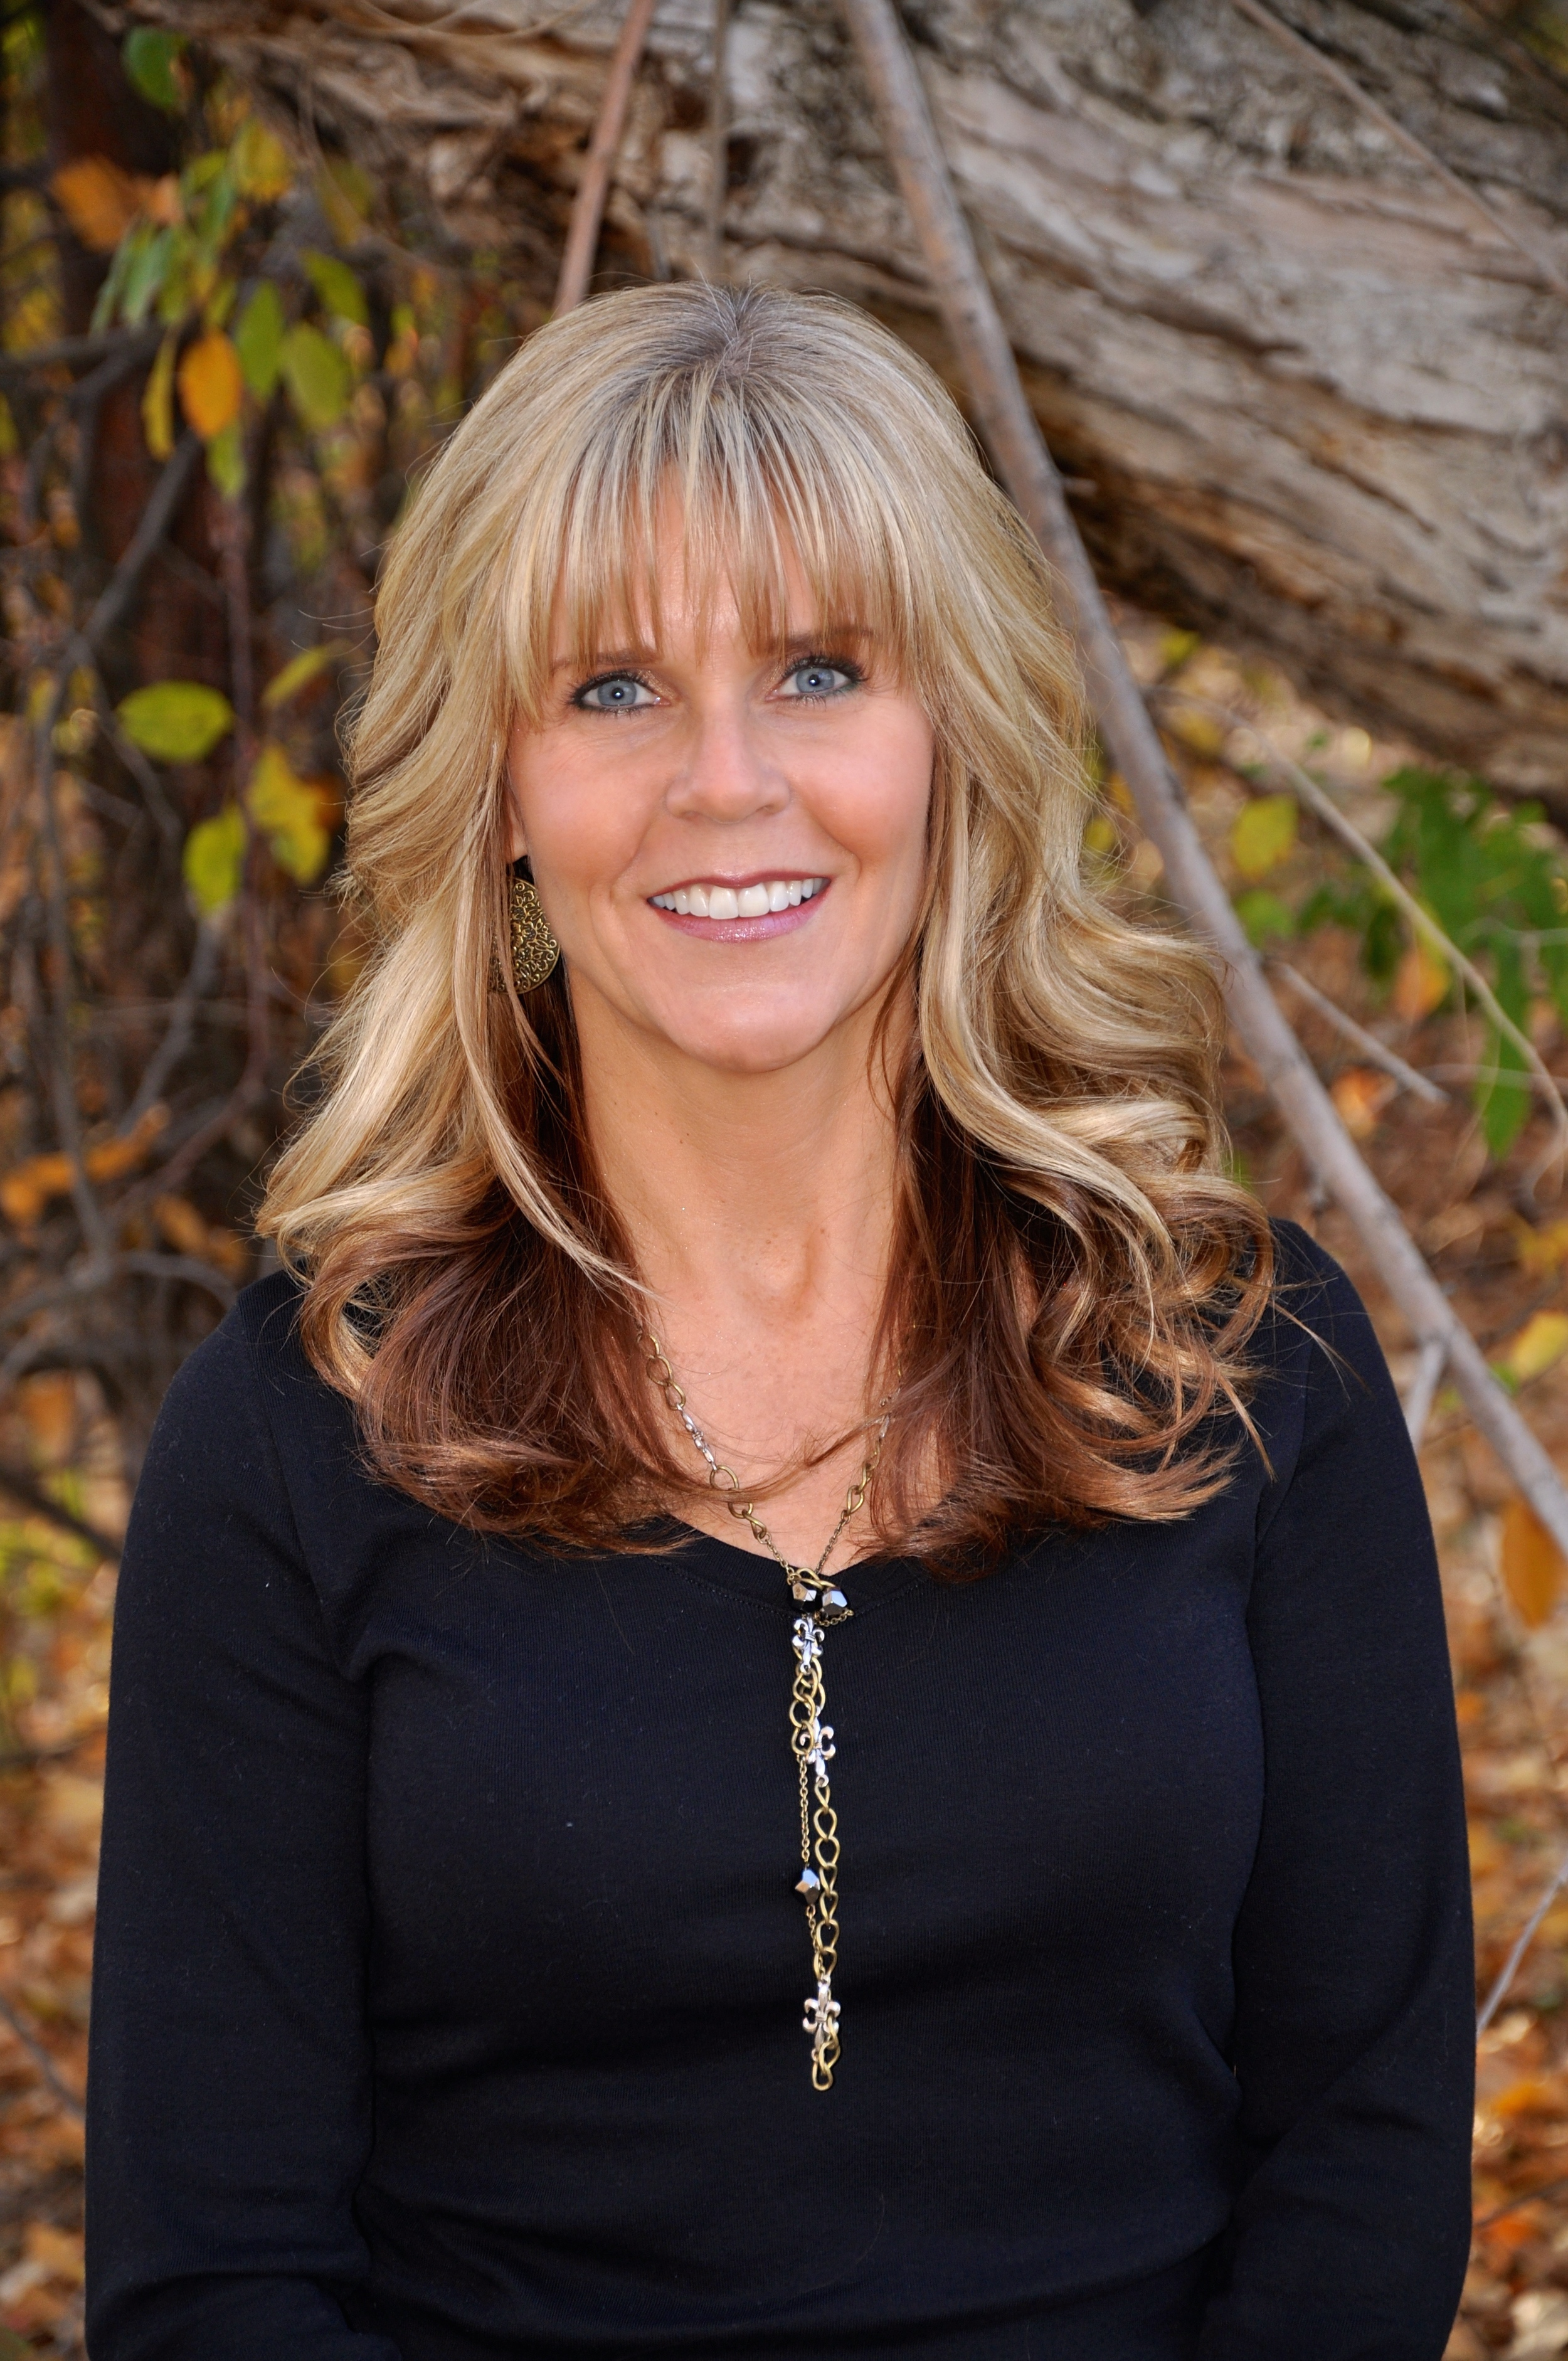 Leslie works for us every Tuesday. She graduated from WSU in 1998 and has worked for Dr. Cowley since then. She is married to the man of her dreams and has two fabulous sons and one fantastic daughter-in-law. Leslie enjoys golfing, boating, snowskiing, and spending time with her family.